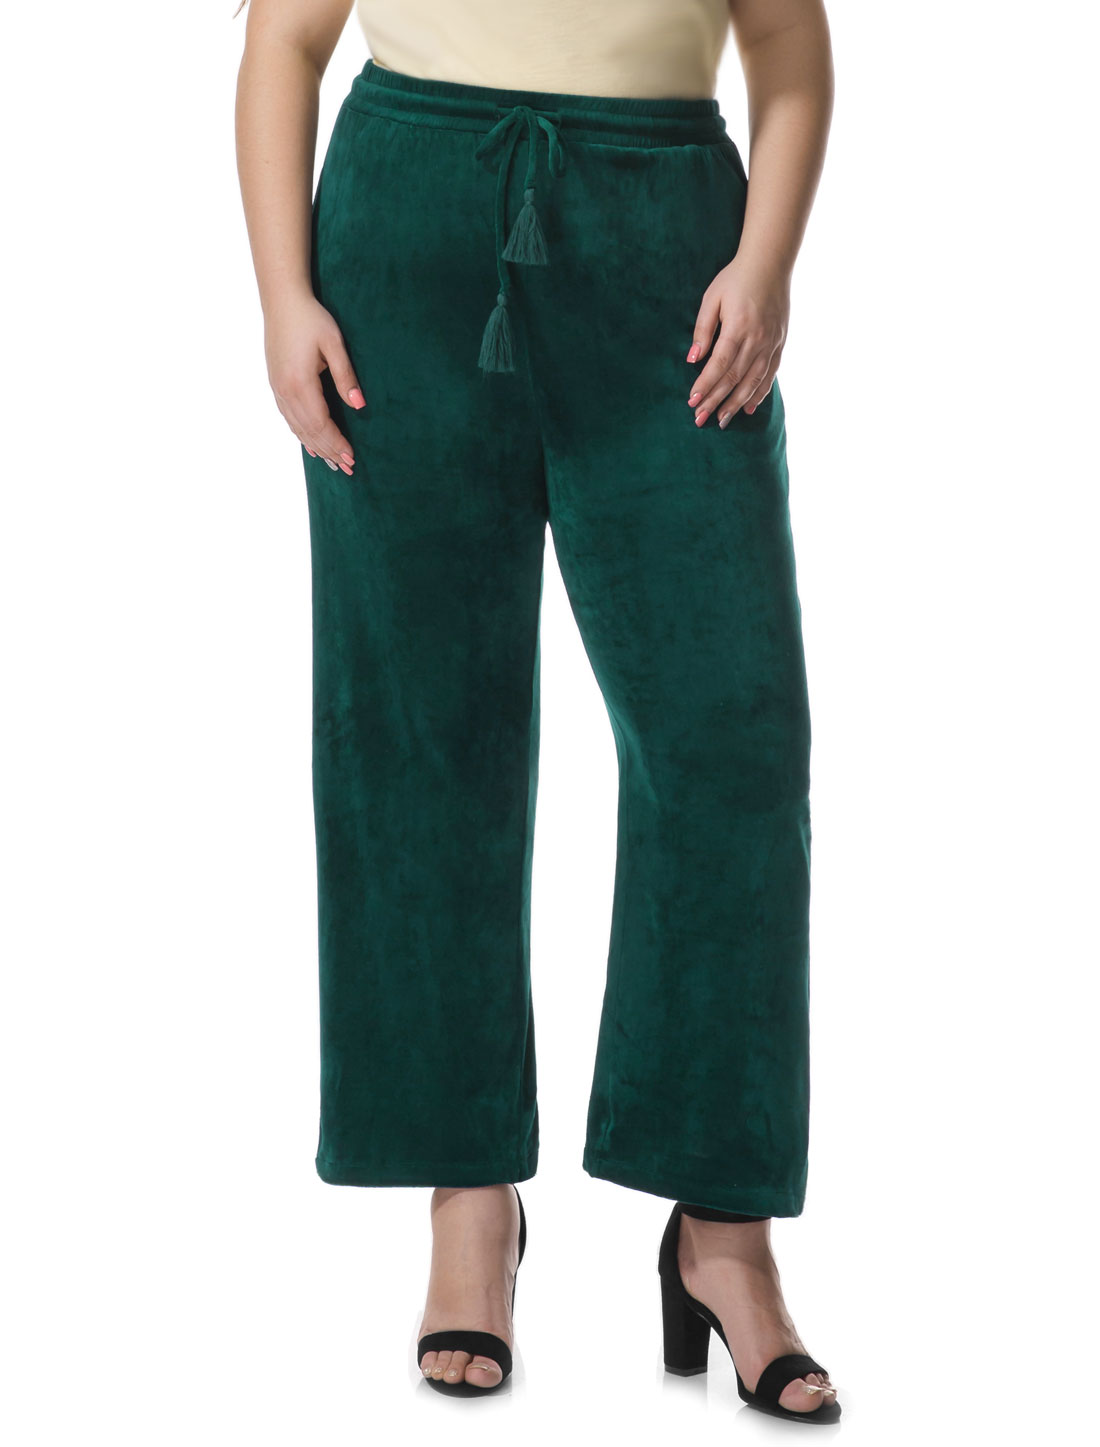 Women Plus Size Velvet Elastic Waist Drawstring Pants Green 3X